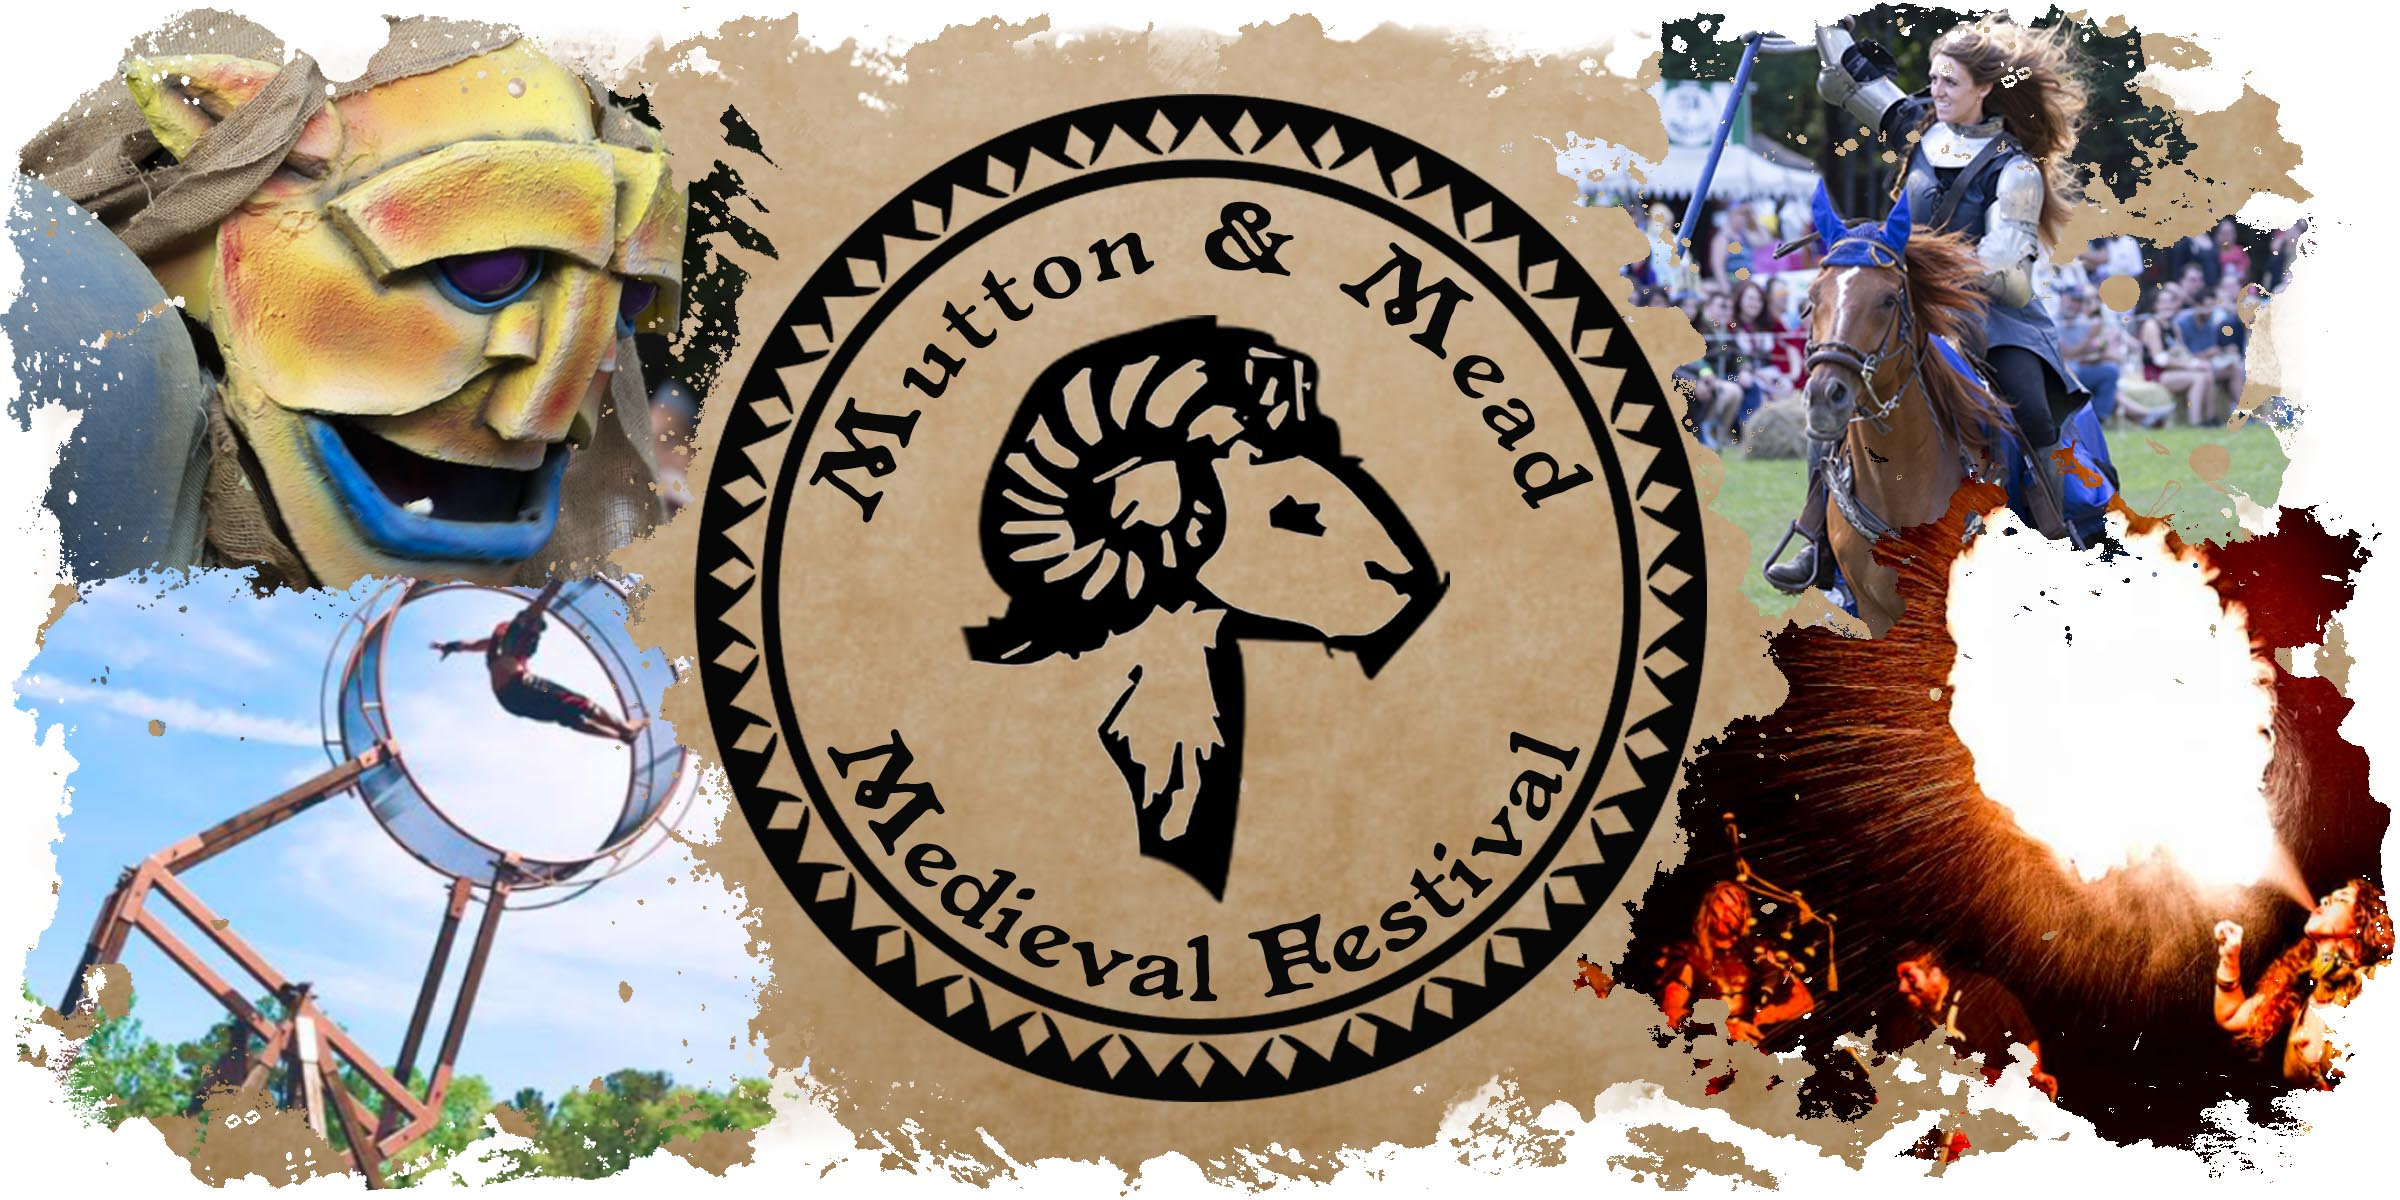 Food & Marketplace — Mutton & Mead Medieval Festival